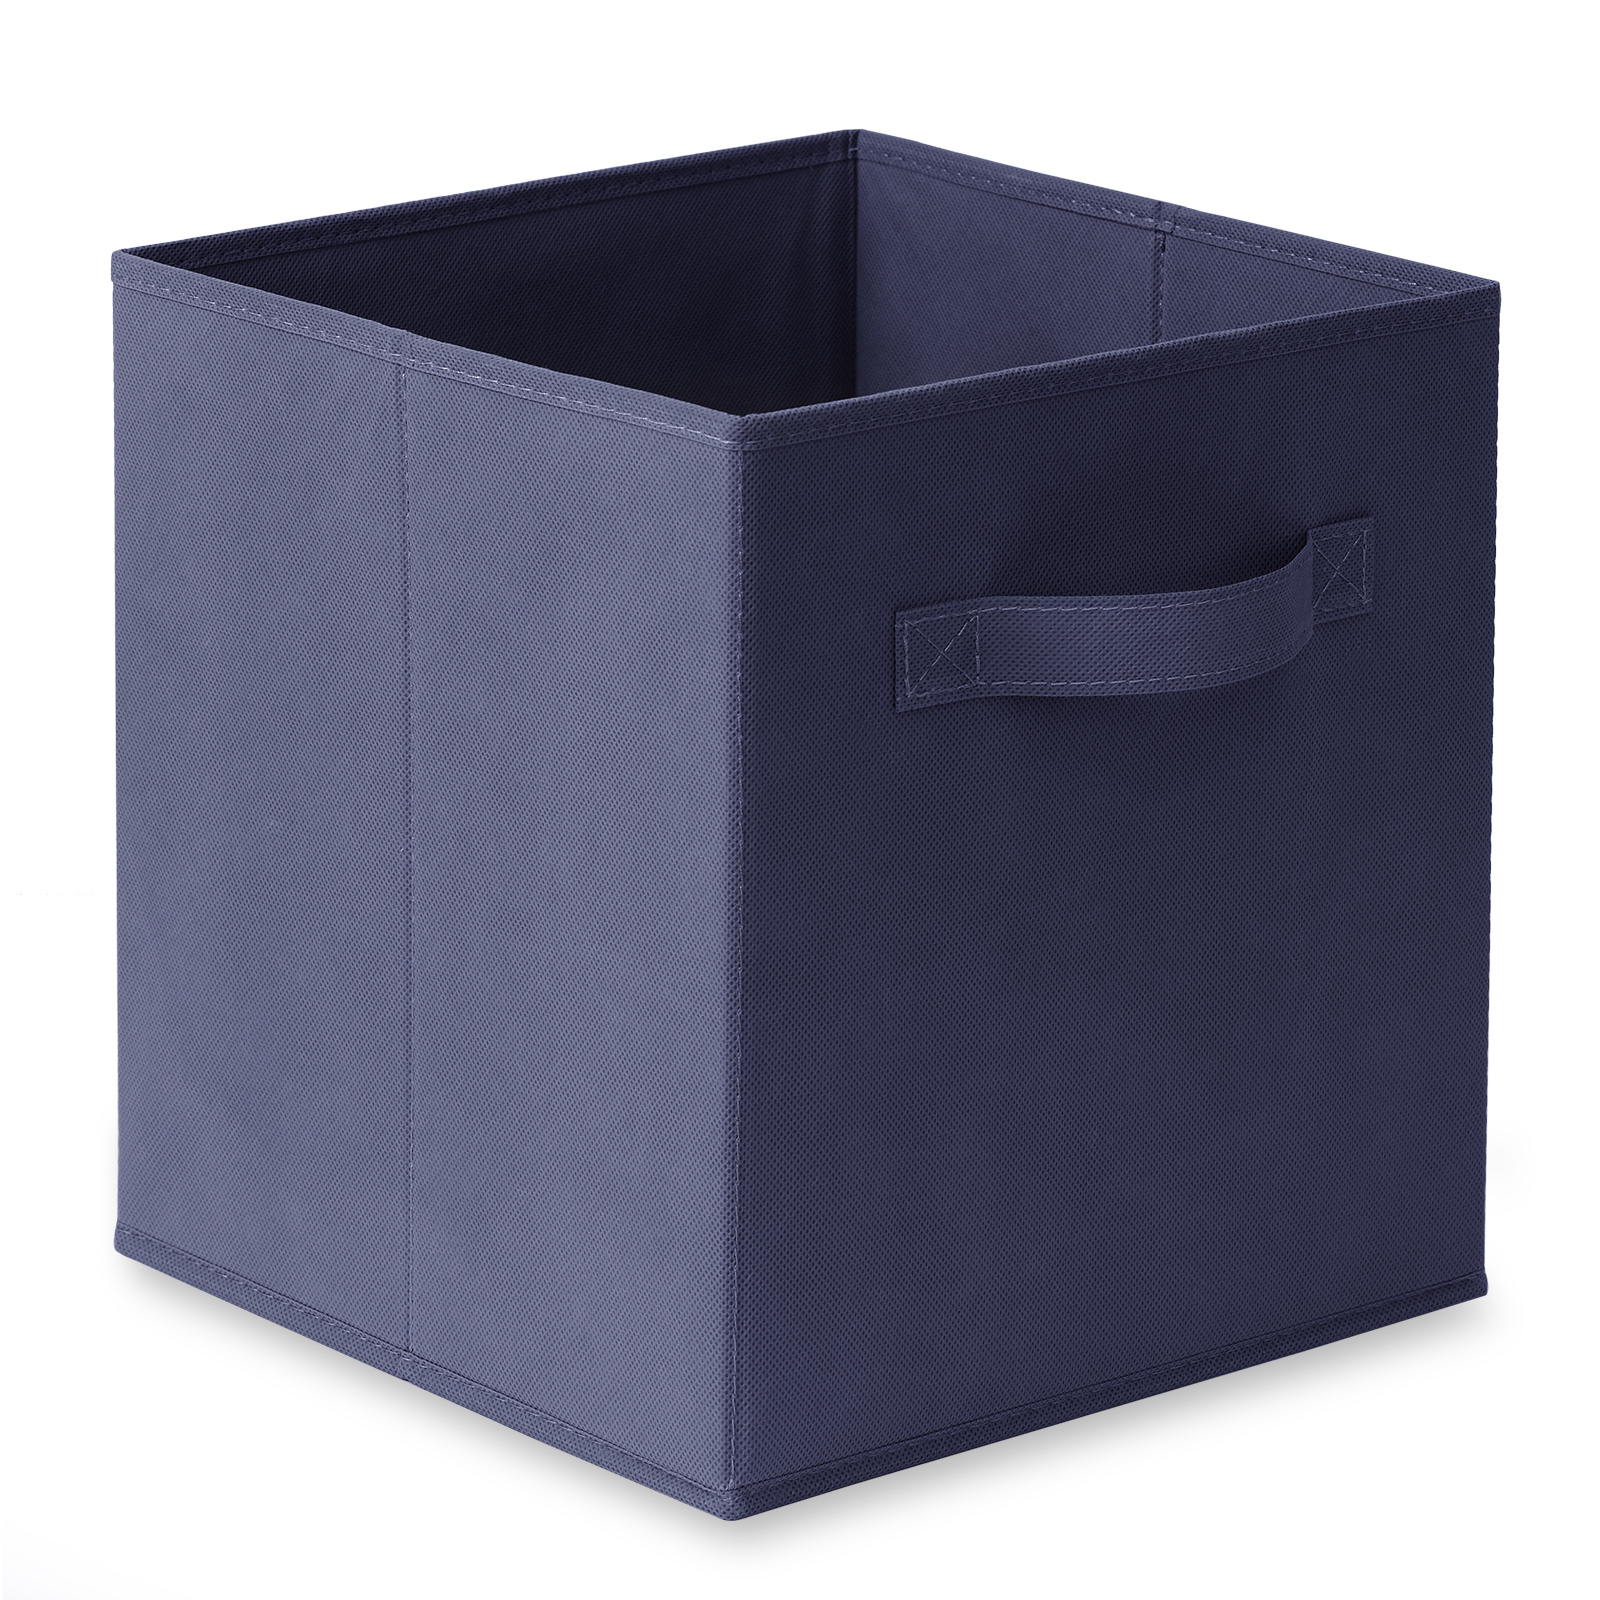 6 collapsible foldable cloth fabric cubby cube storage bins baskets for shelves ebay. Black Bedroom Furniture Sets. Home Design Ideas